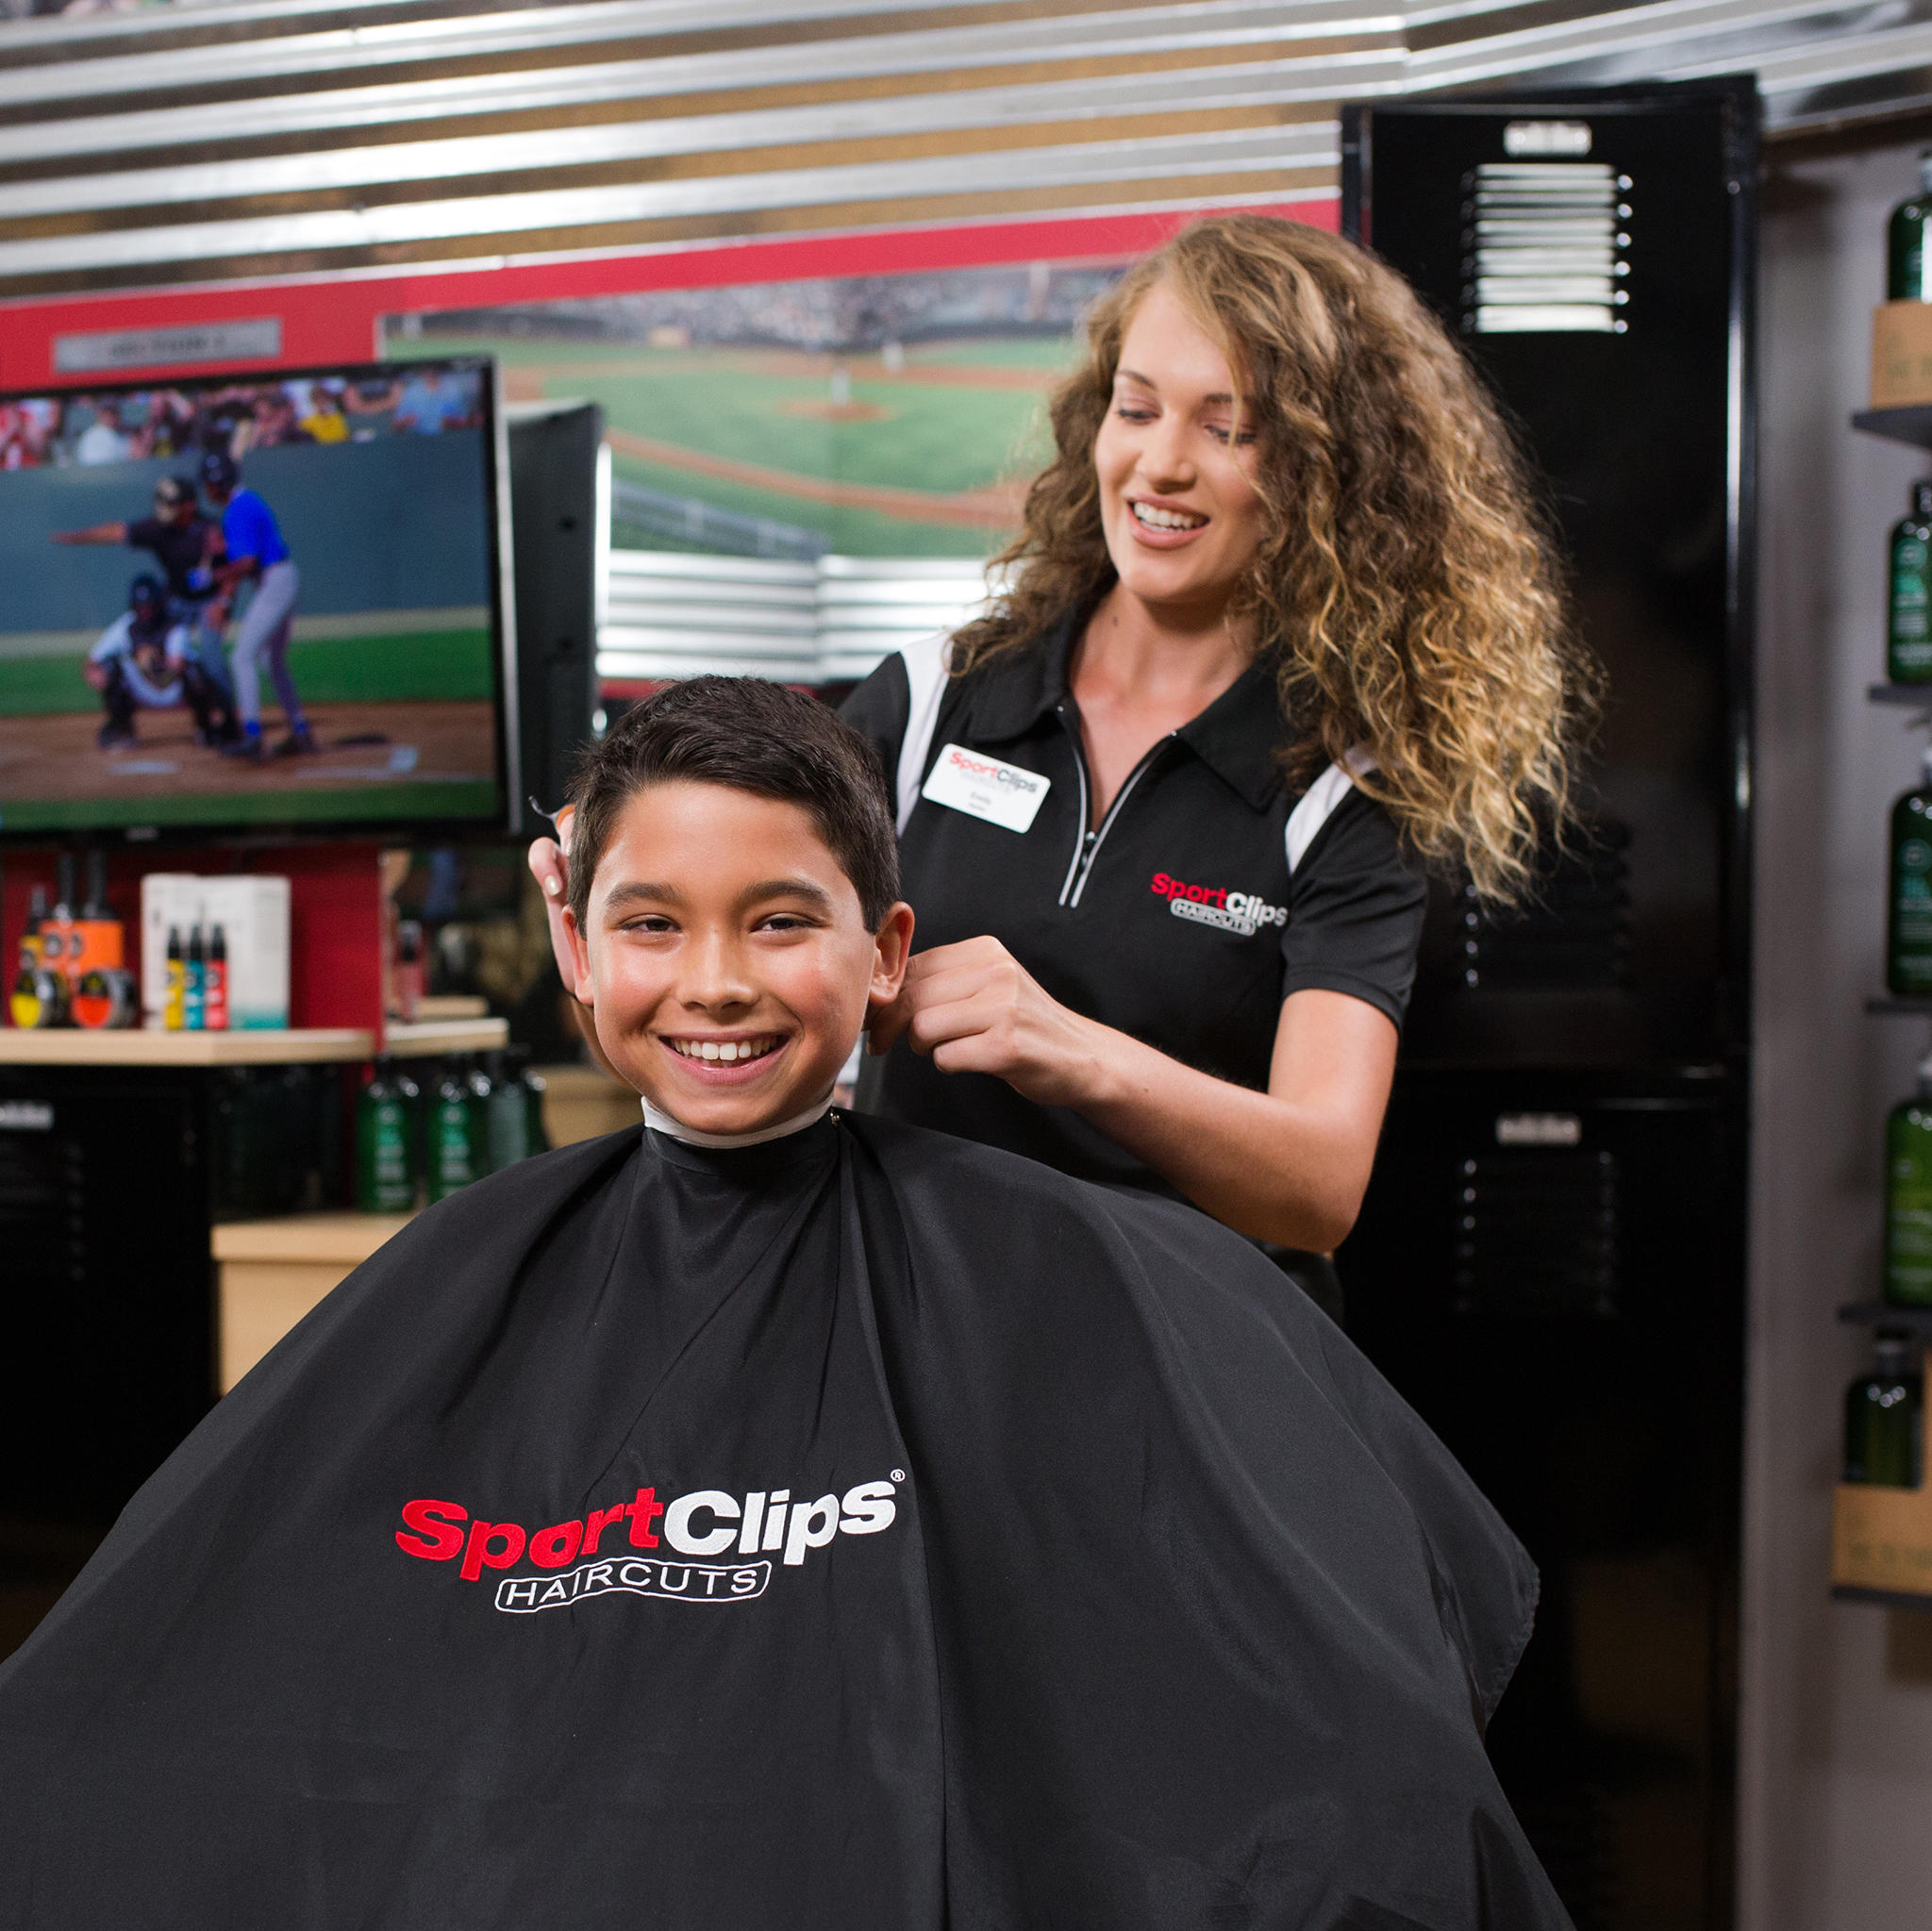 Sport Clips Haircuts Of Milford Ma 196 East Main Street Opposite